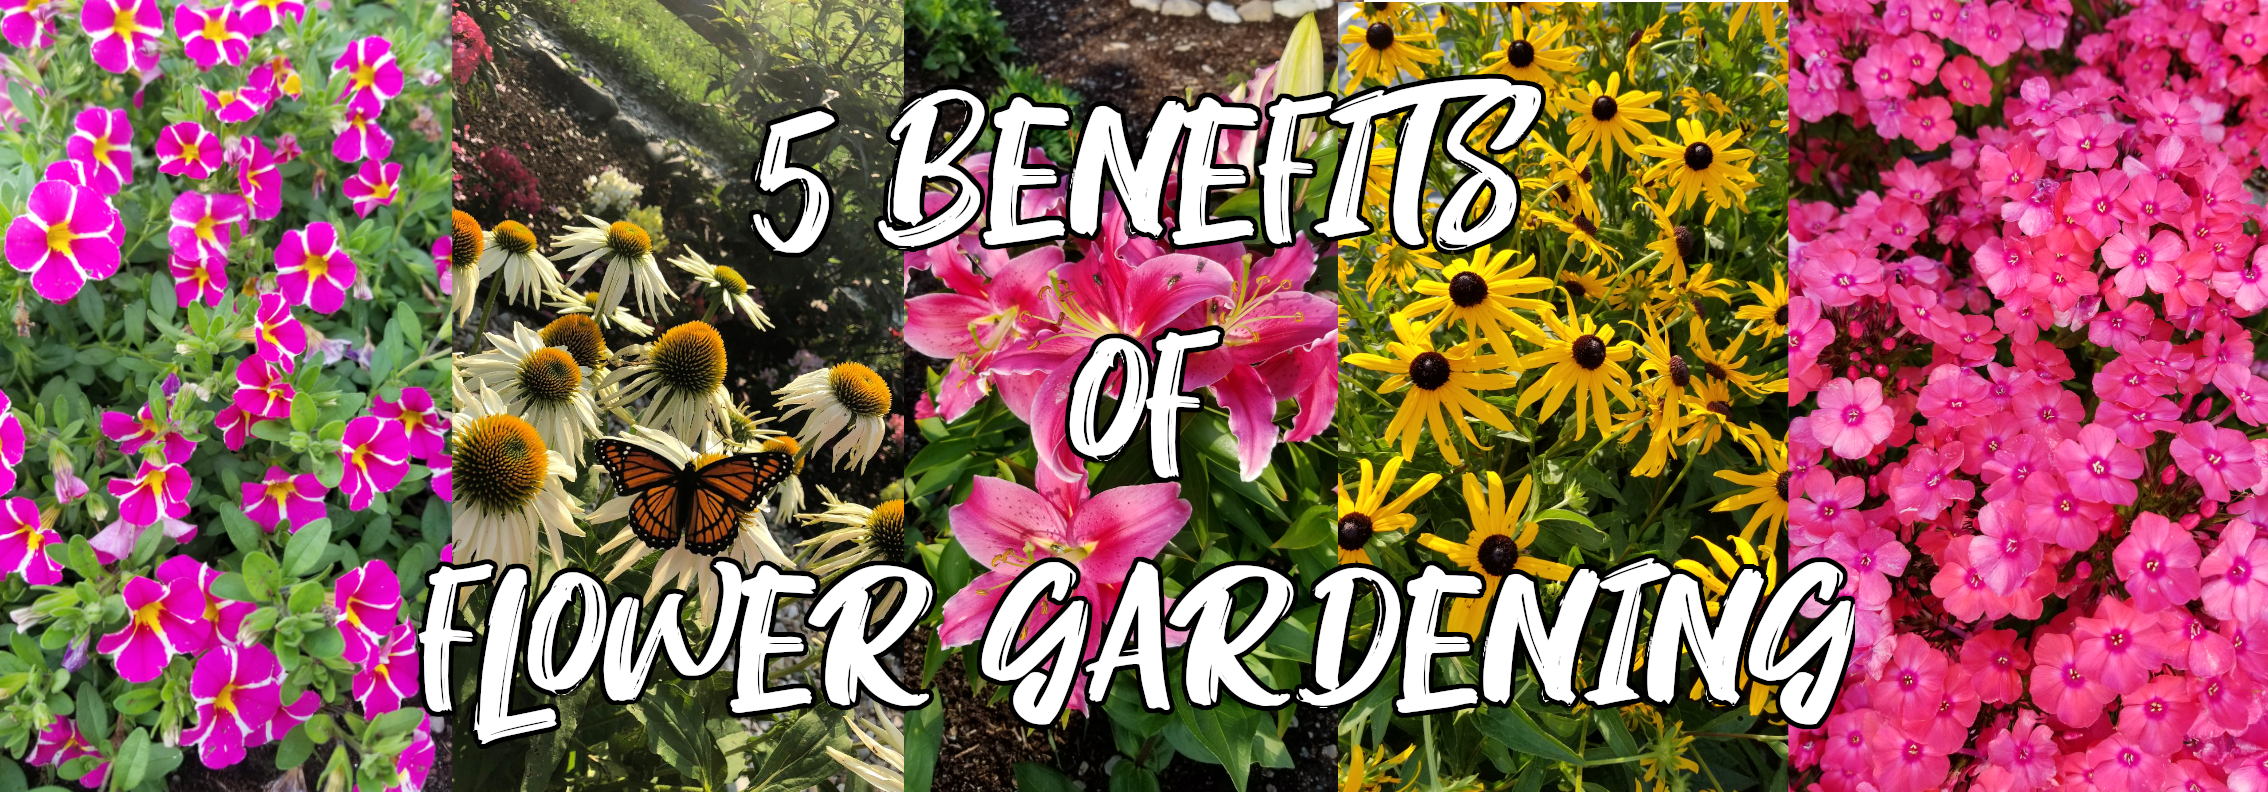 5 Benefits Of Starting A Flower Garden Thistle Downs Farm